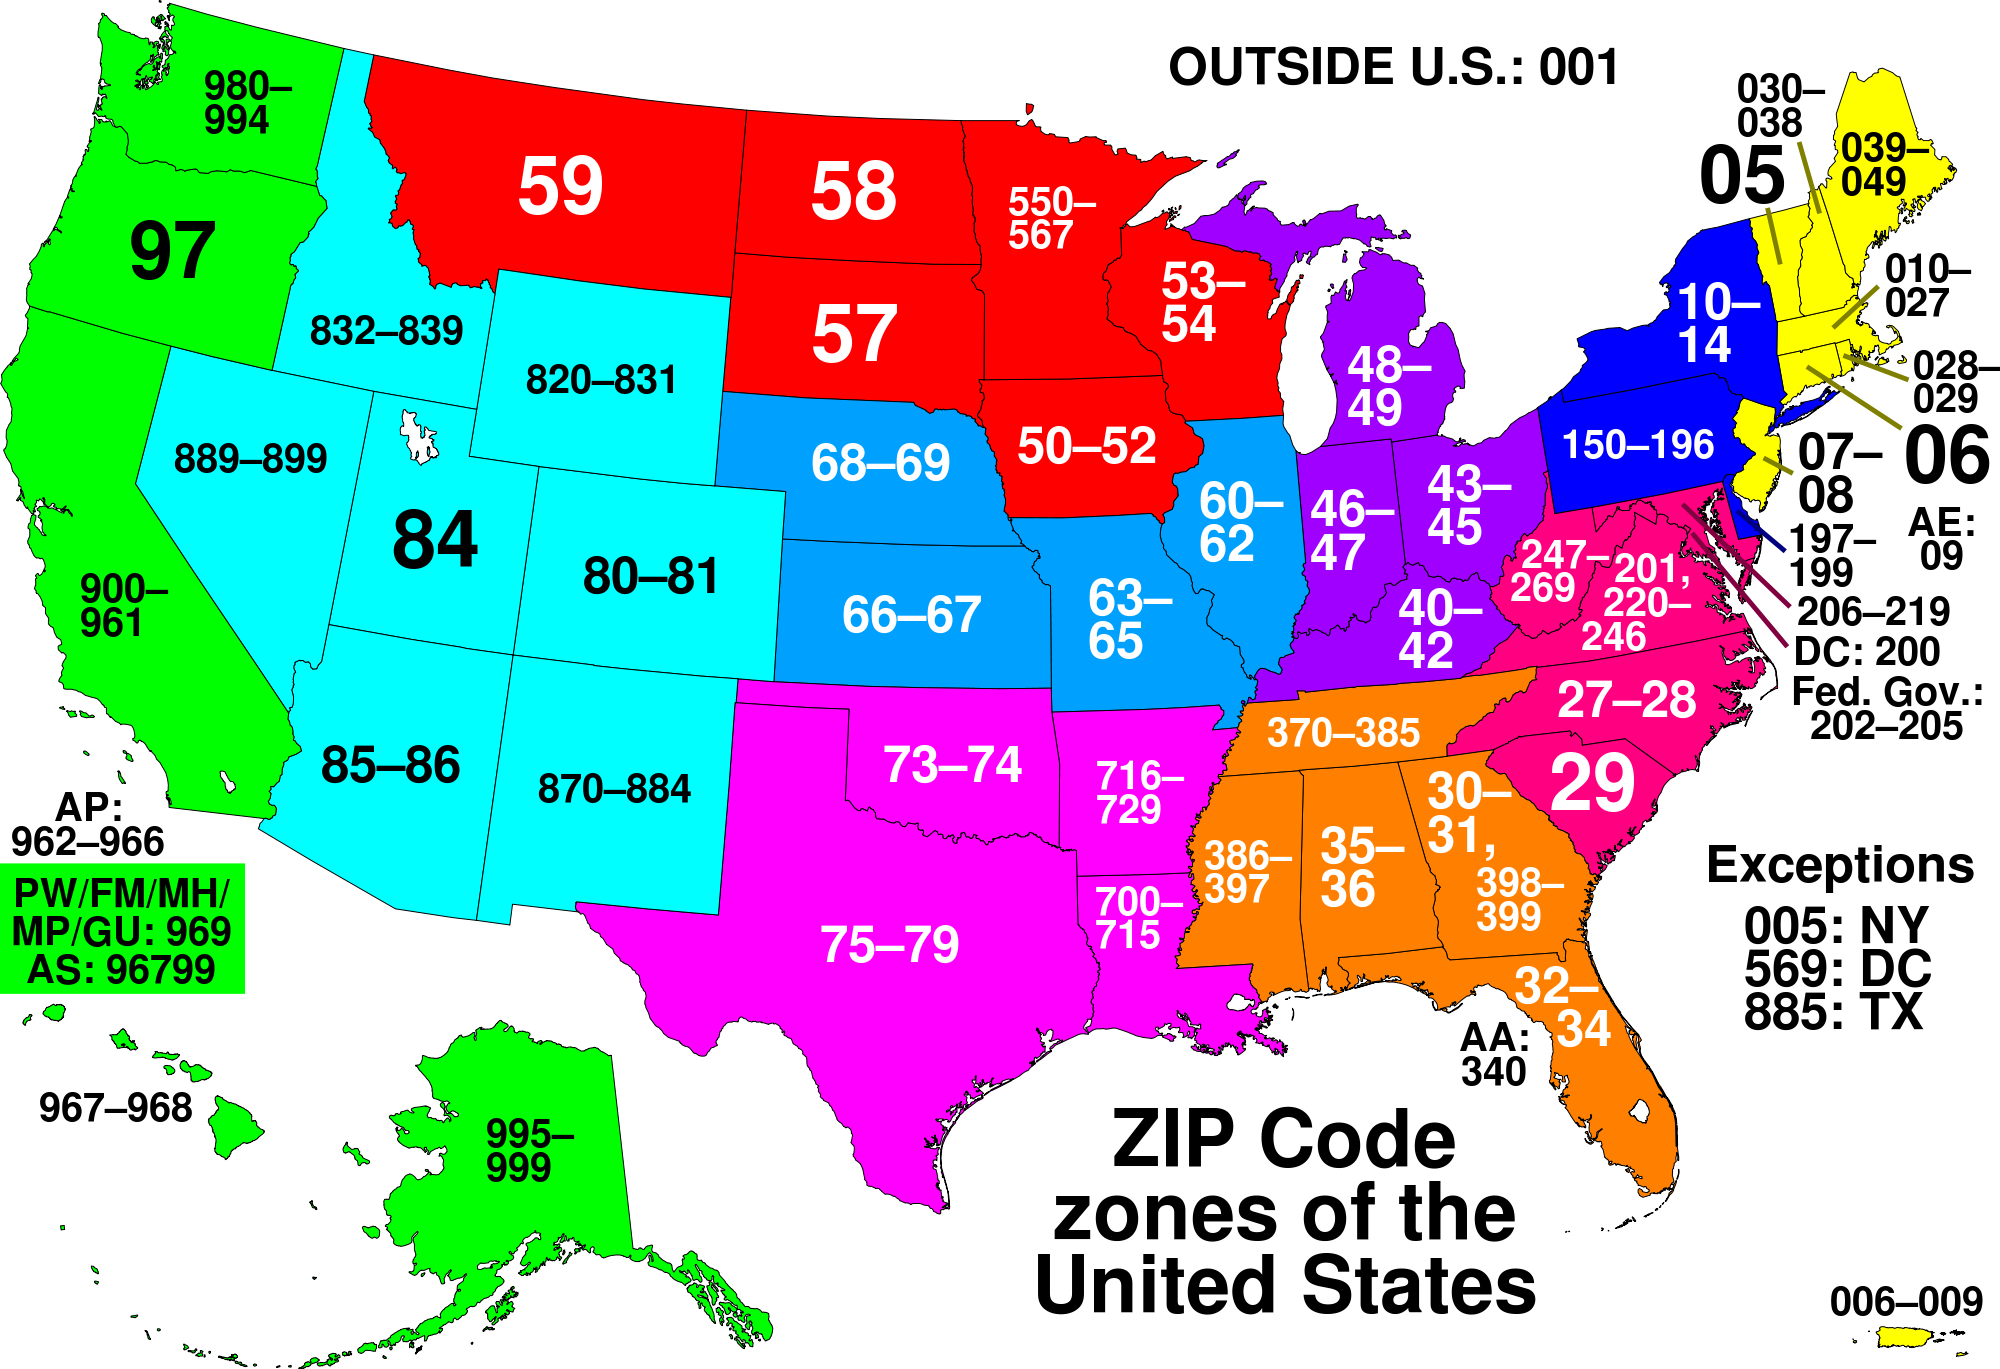 ZIP Codes Are A System Of Postal Codes Used By The United States - Us zip code website